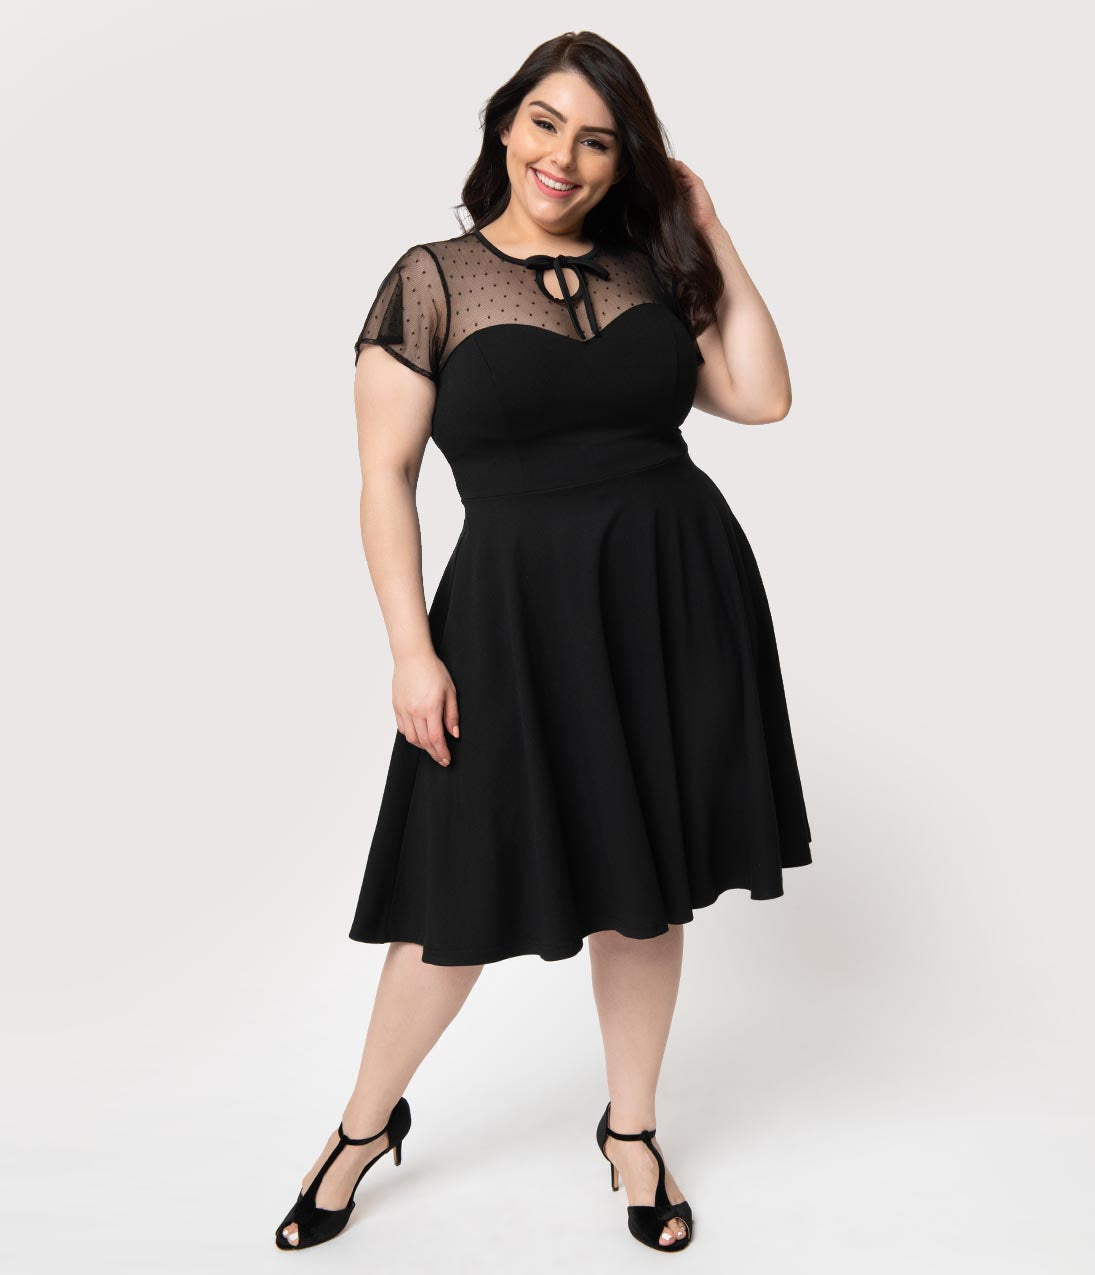 1940s Fashion Advice for Tall Women Unique Vintage Plus Size 1940S Style Black Swiss Dotted Mesh Heather Midi Dress $98.00 AT vintagedancer.com